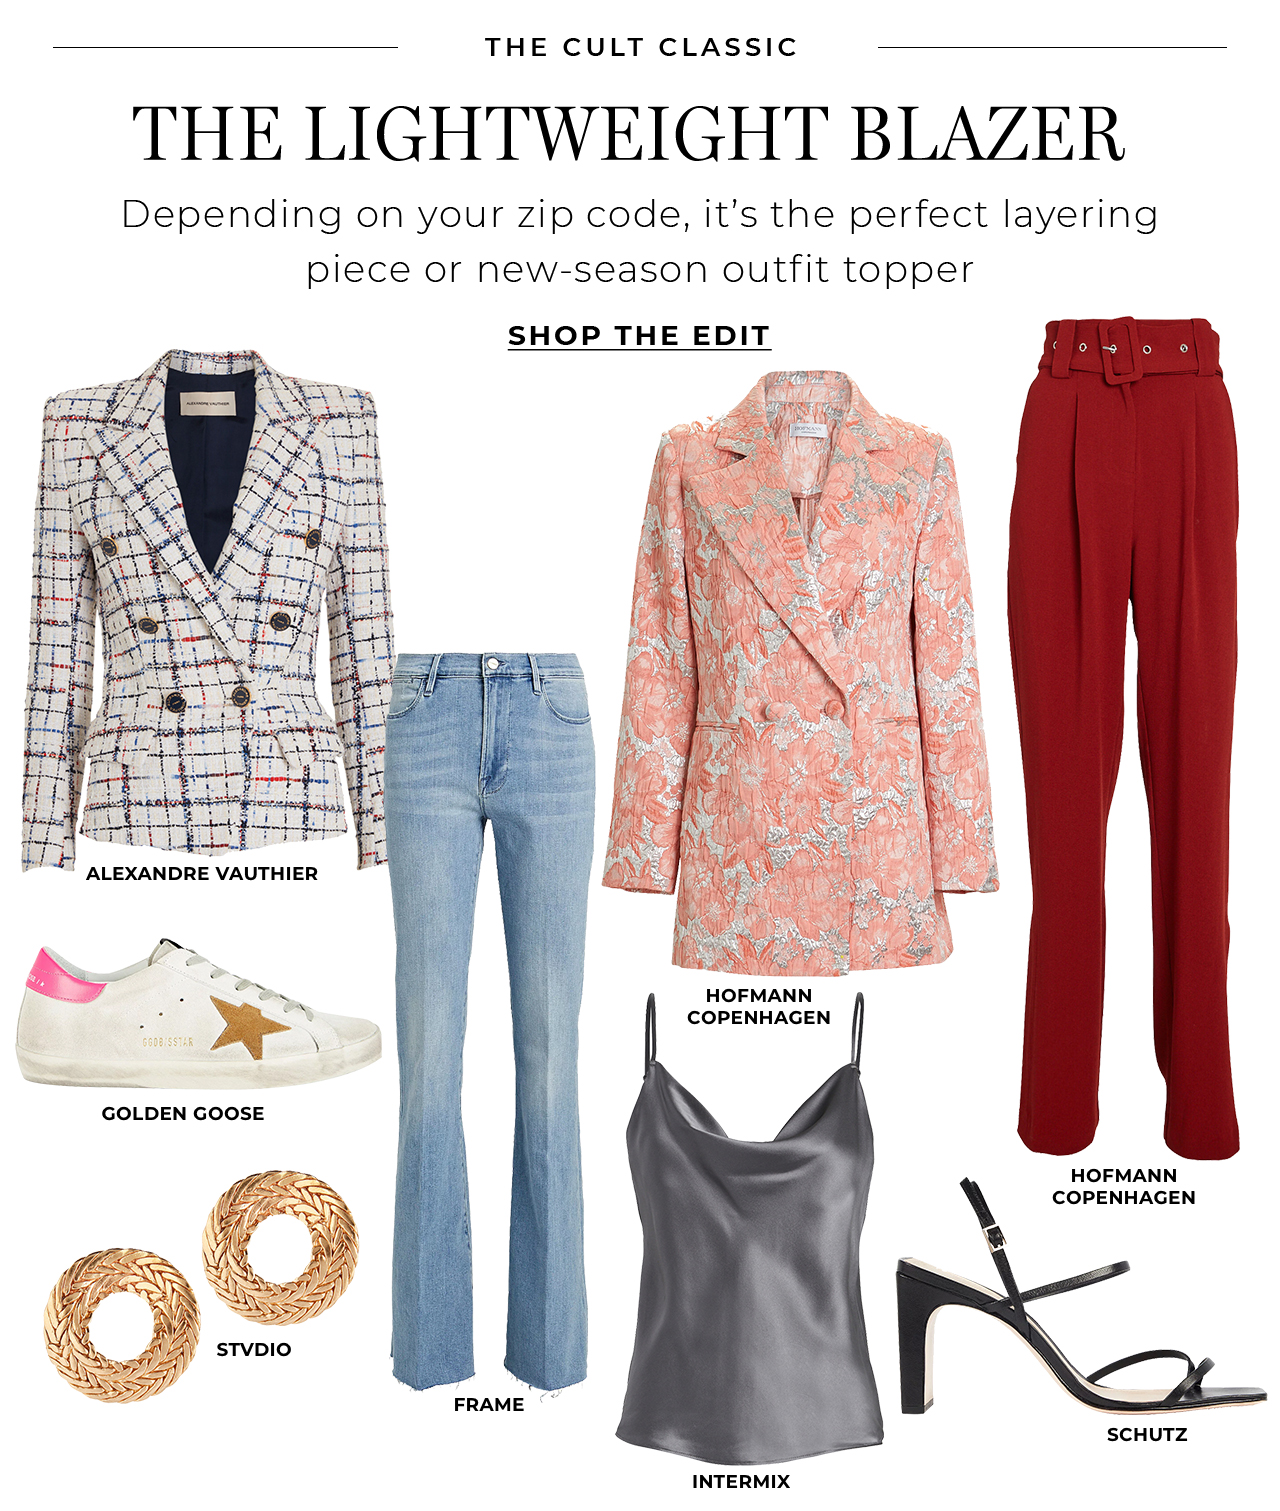 The lightweight blazer is the perfect layering piece